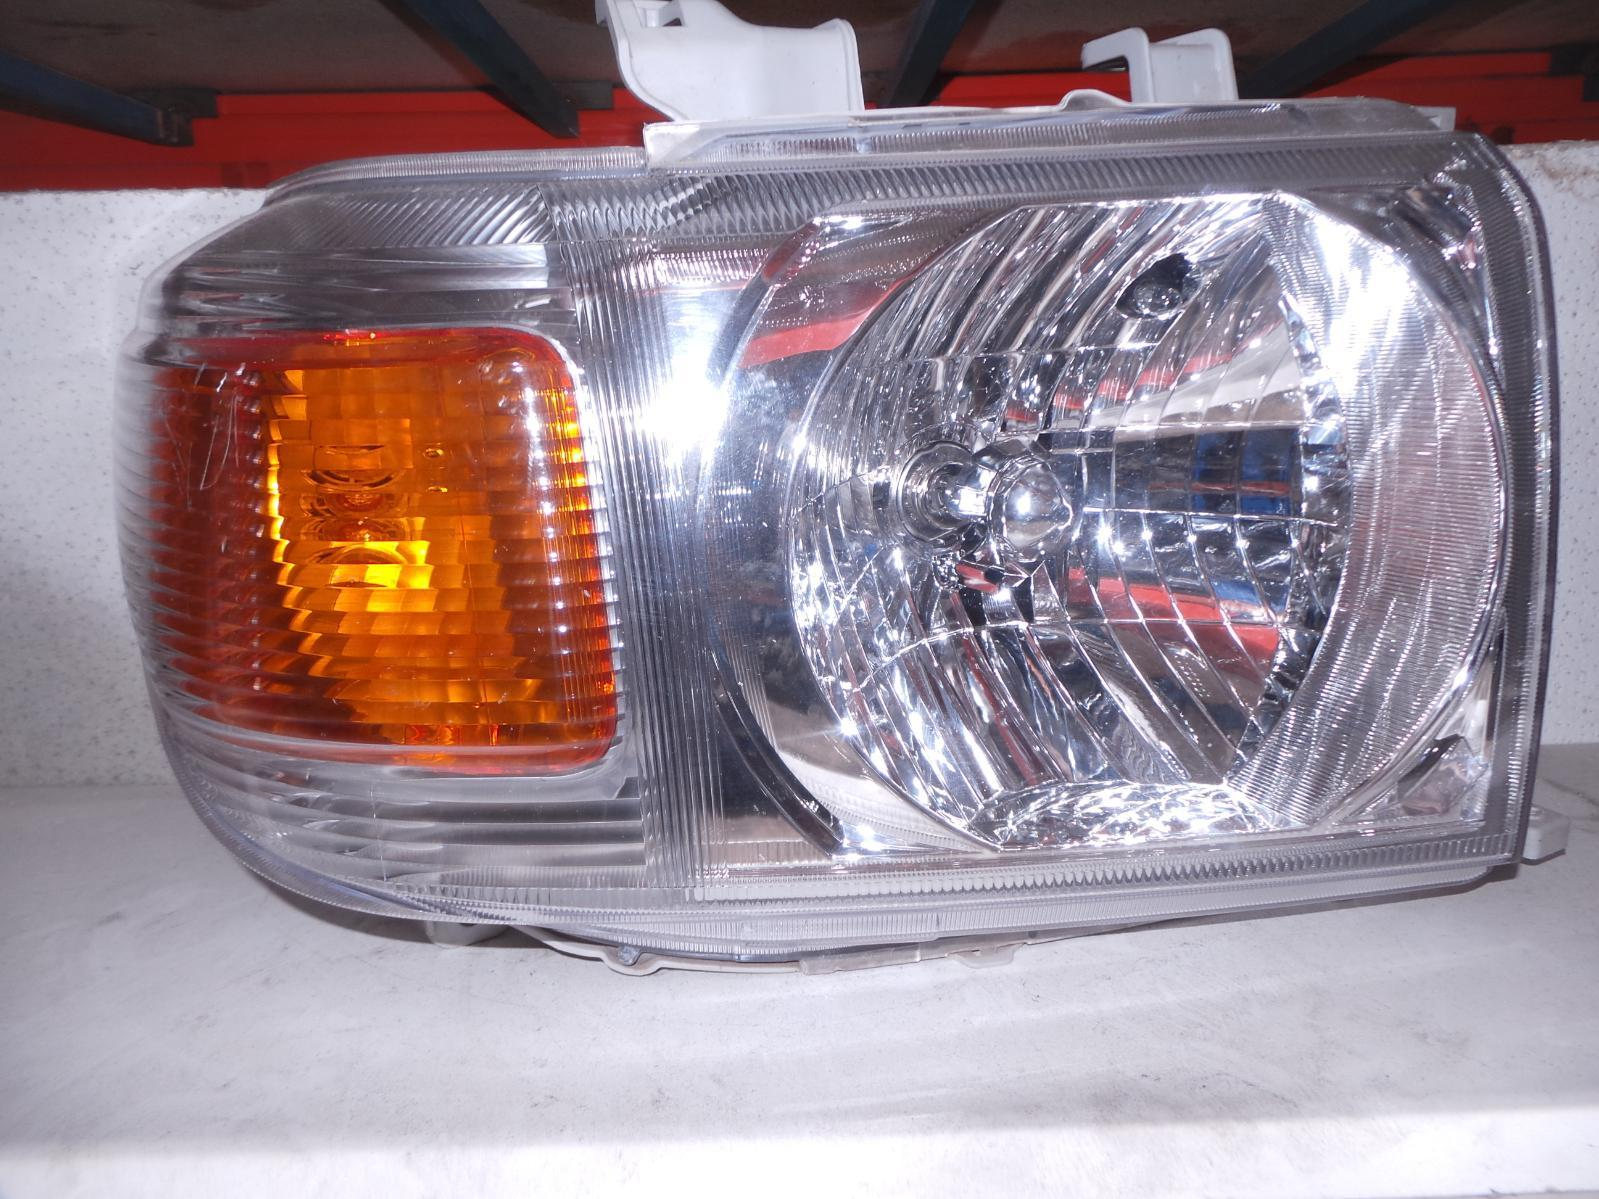 TOYOTA LANDCRUISER, Right Headlamp, 76/78/79 SERIES (UPDATE), HALOGEN TYPE, 03/07-